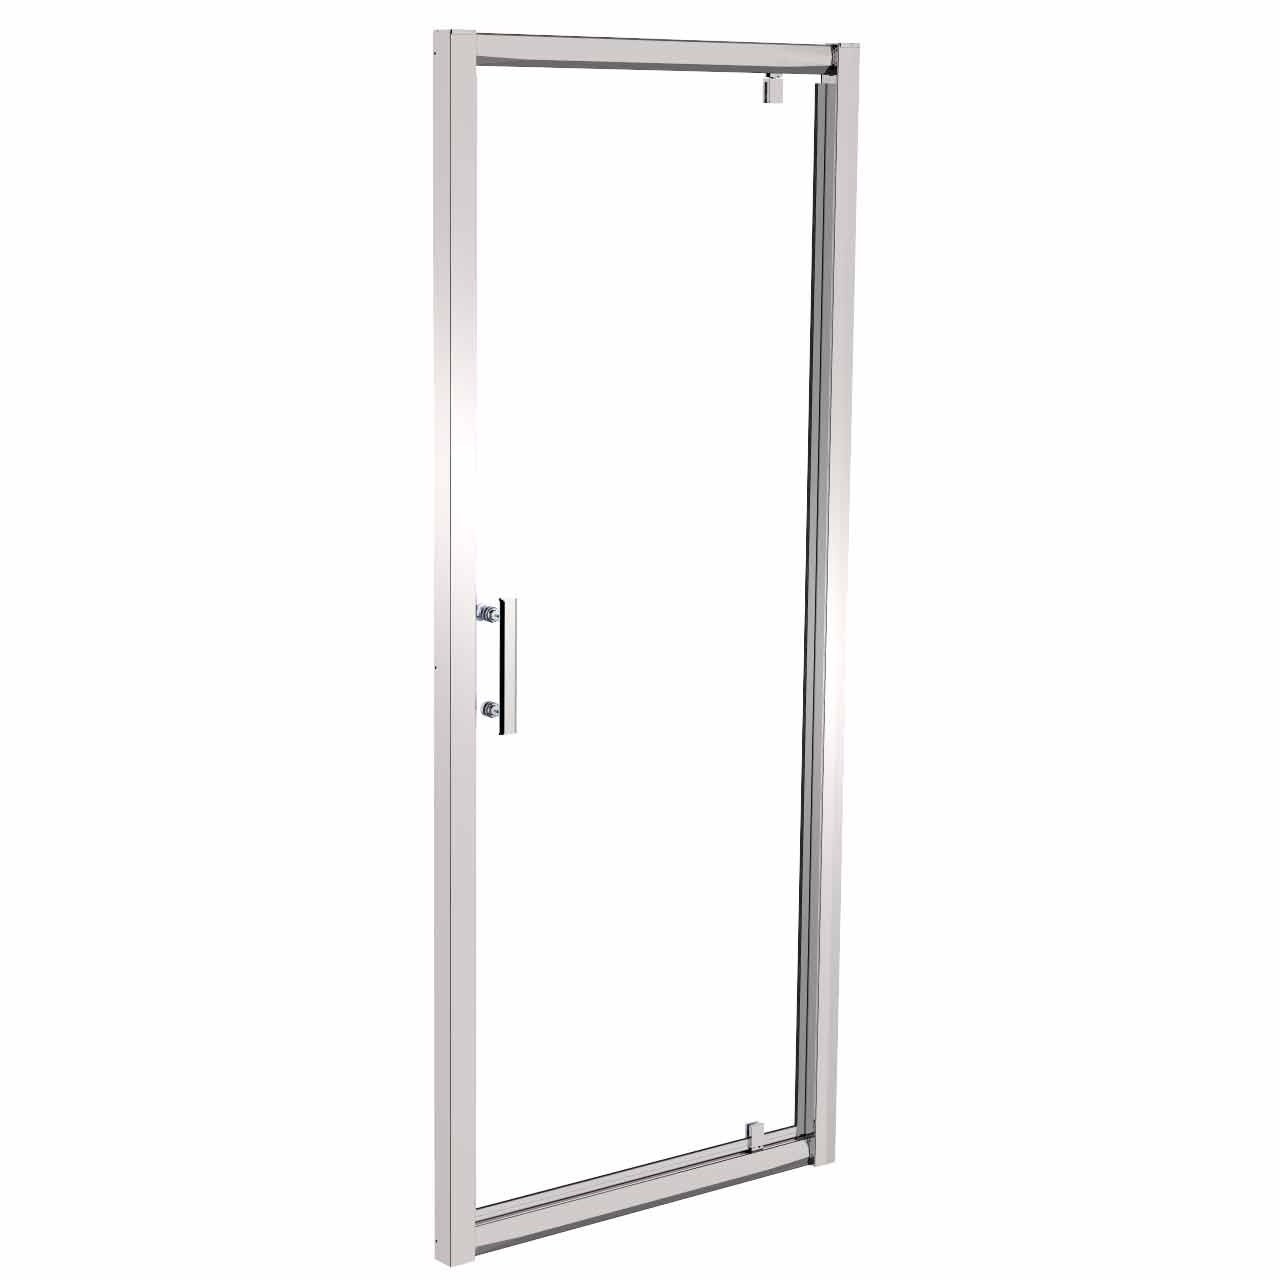 Series 6 800 x 900 Pivot Door Enclosure